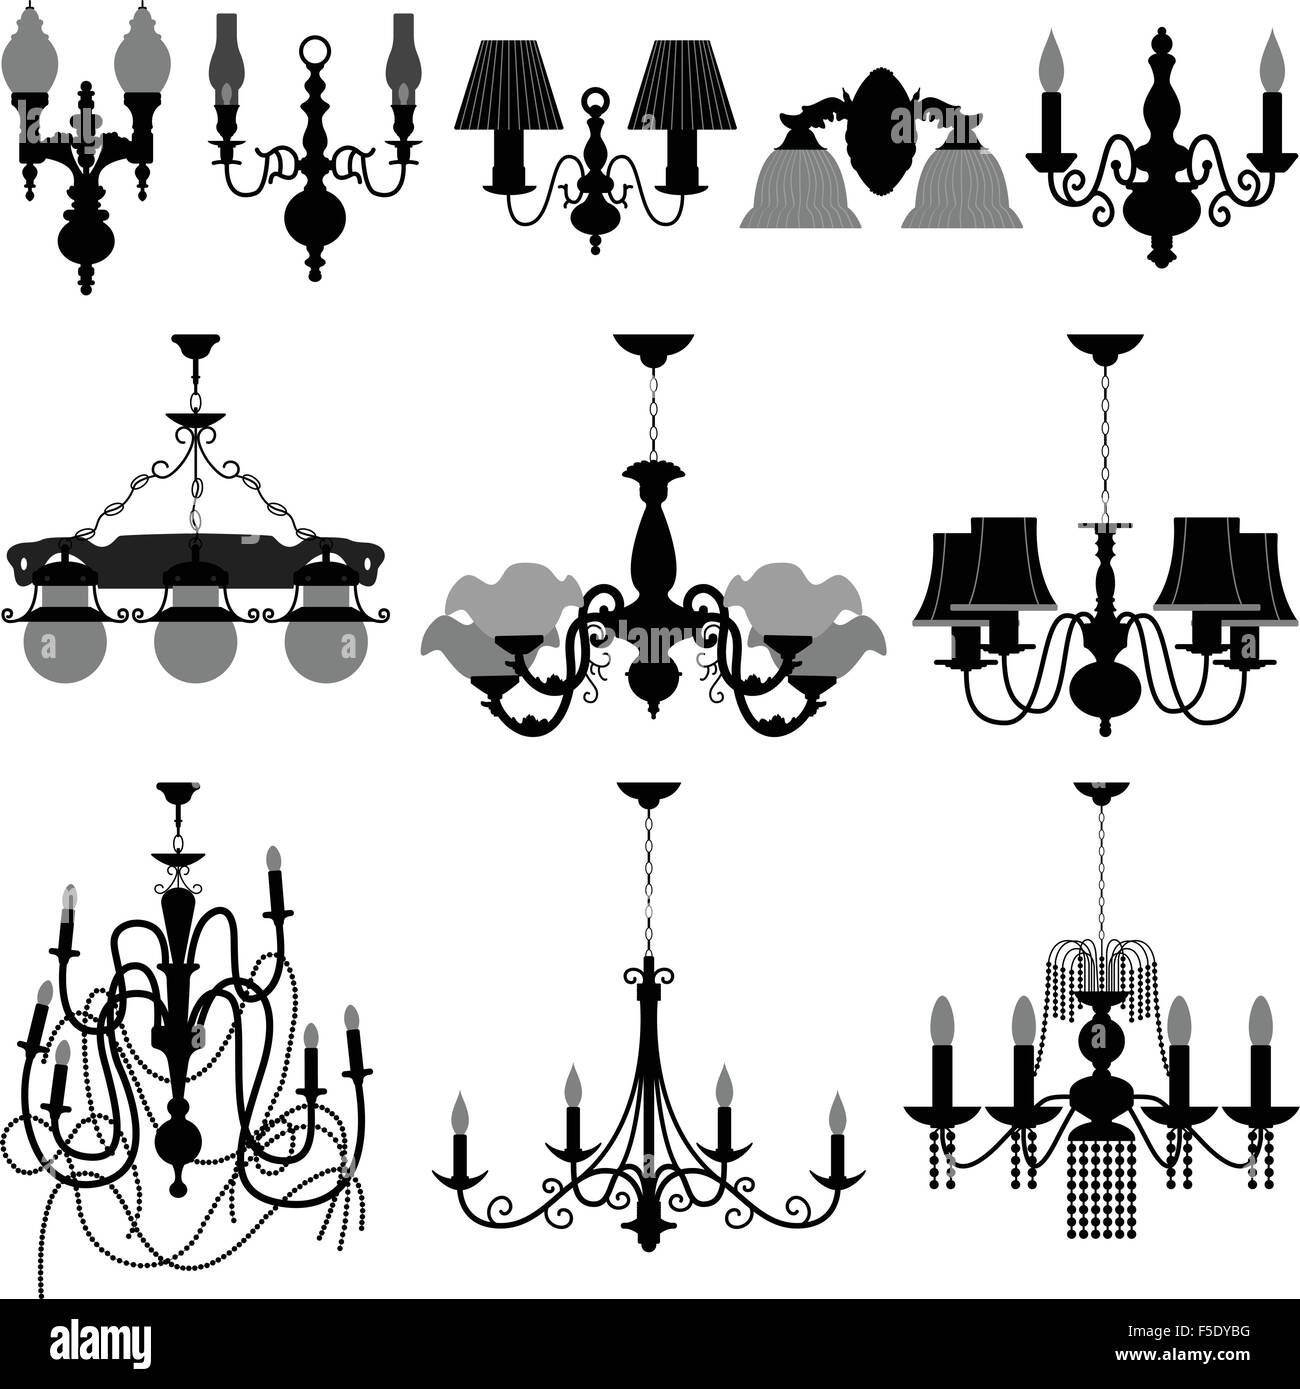 Chandelier Light Lamp Design Wall Ceiling Stock Vector Art ...